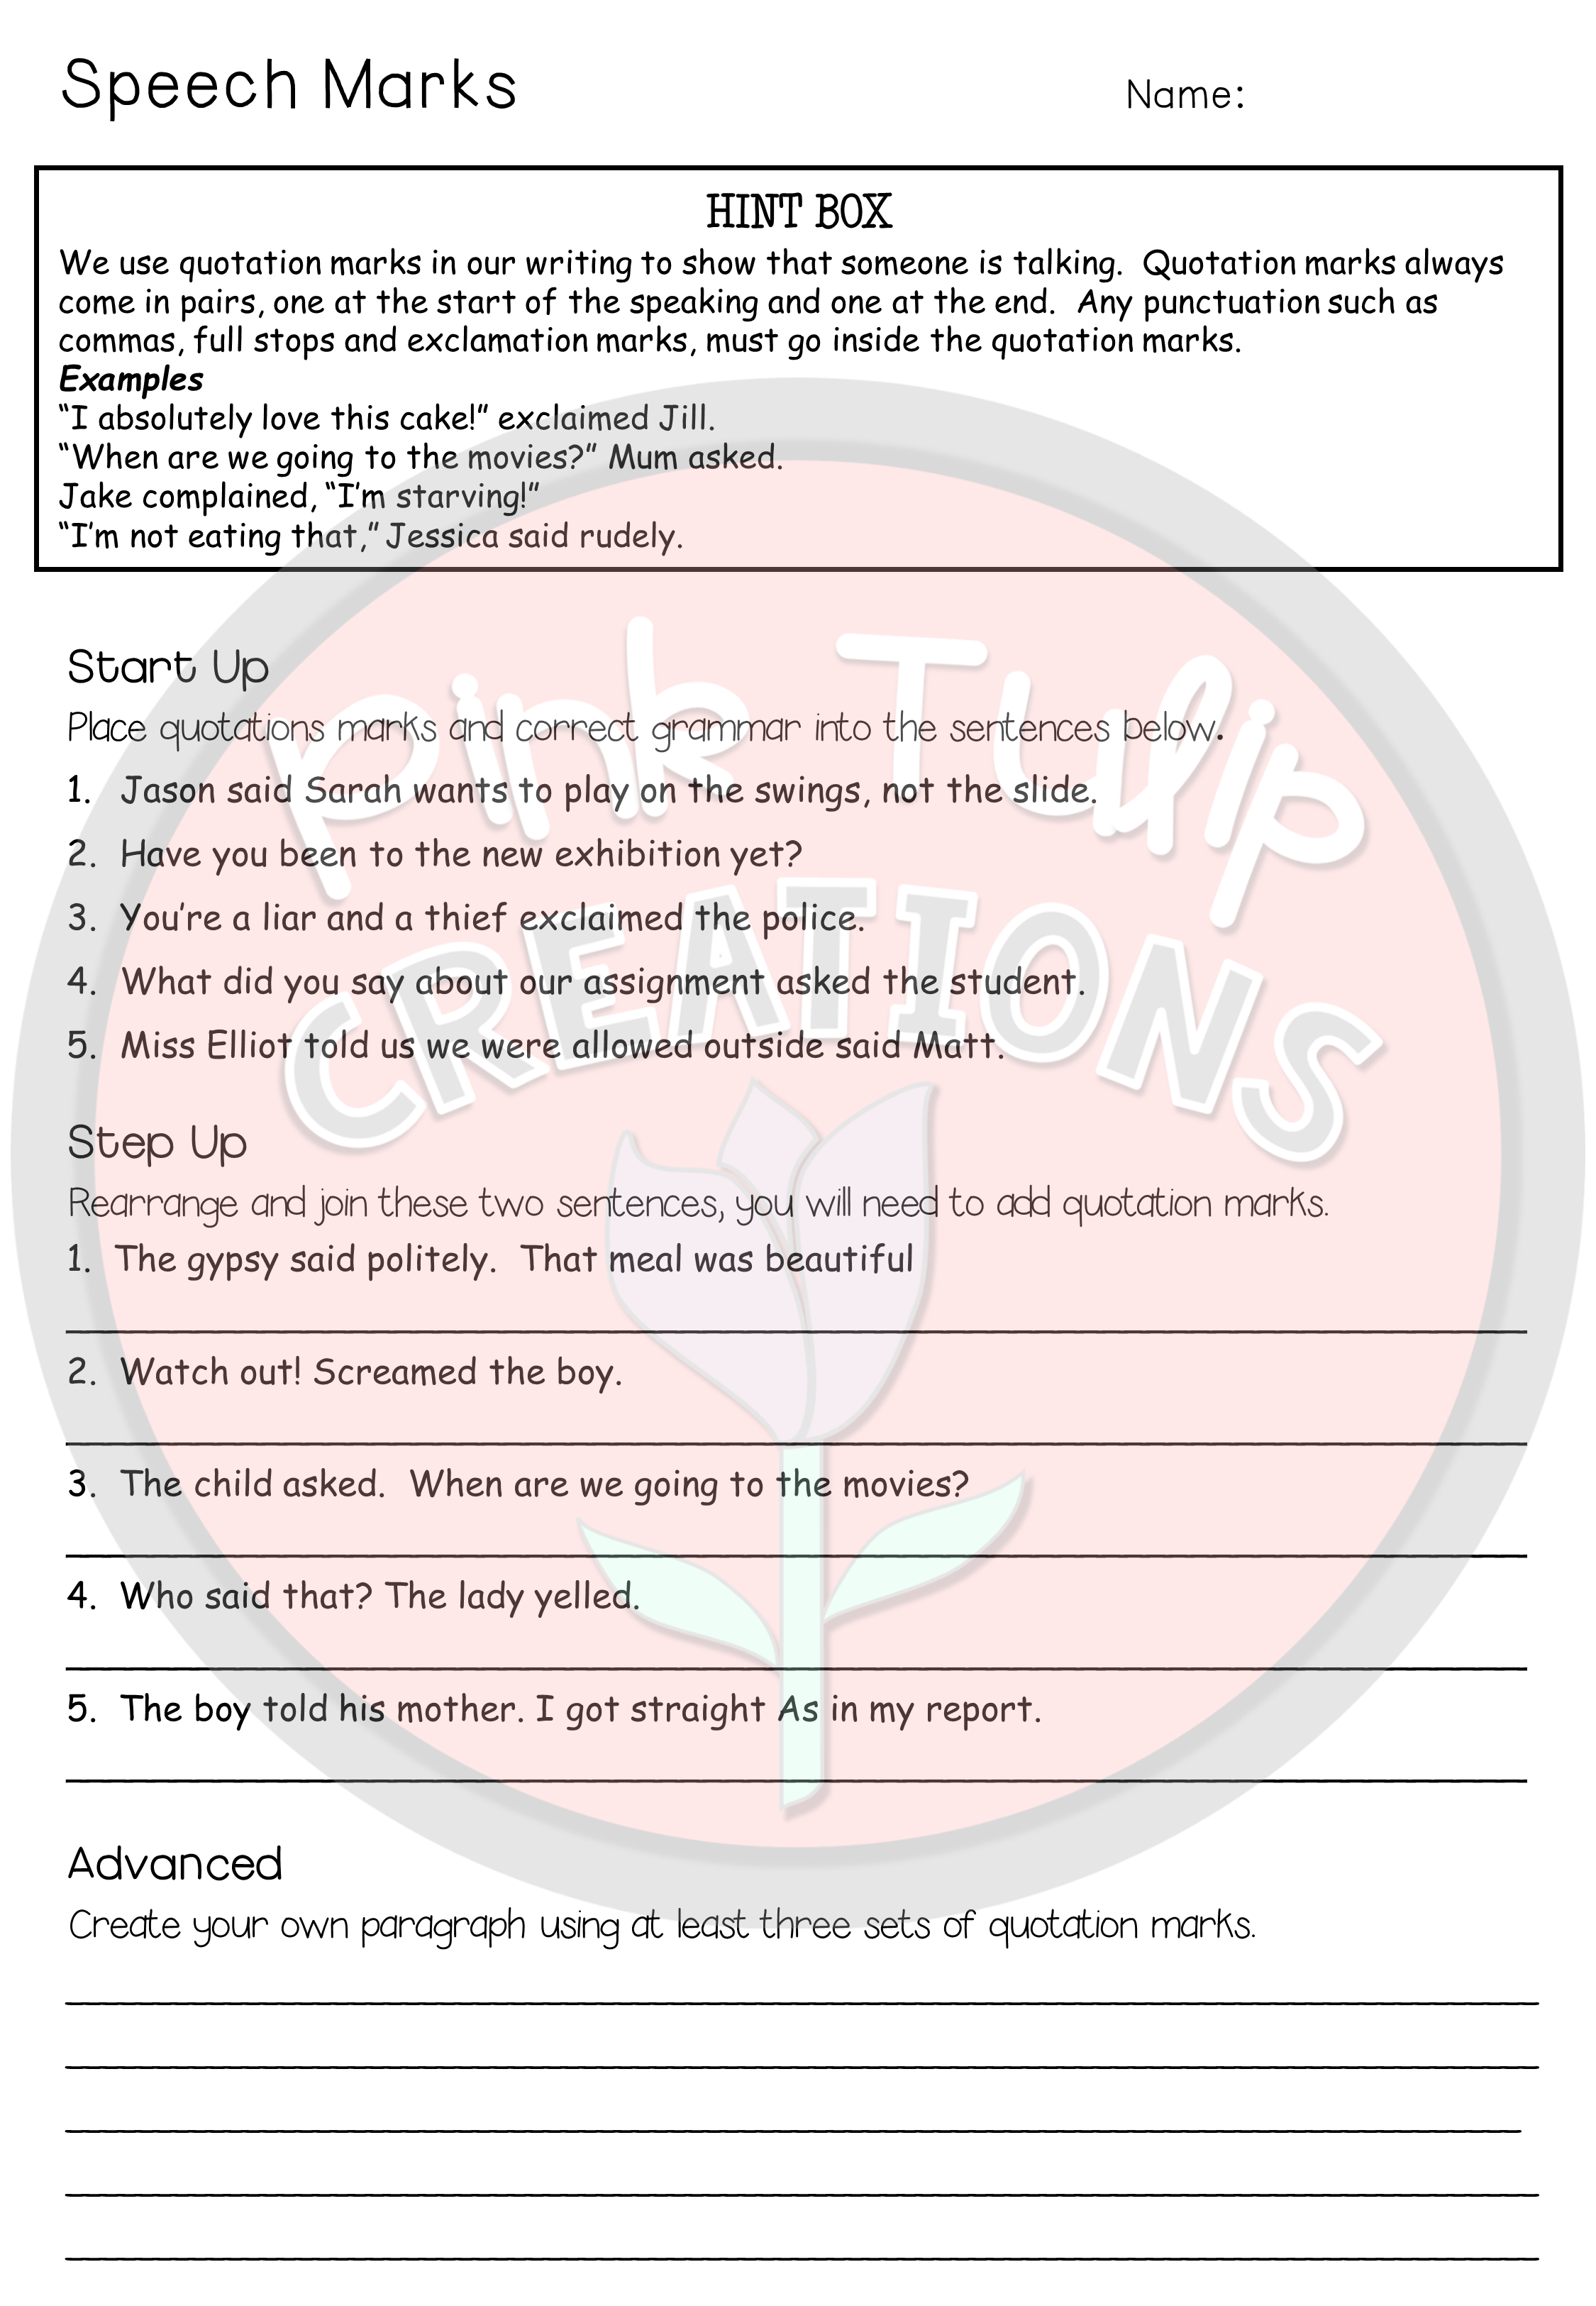 worksheet Quotations Worksheet grammar worksheet pack answers included learning ability booklet comprises of 26 worksheets to help improve students each contains